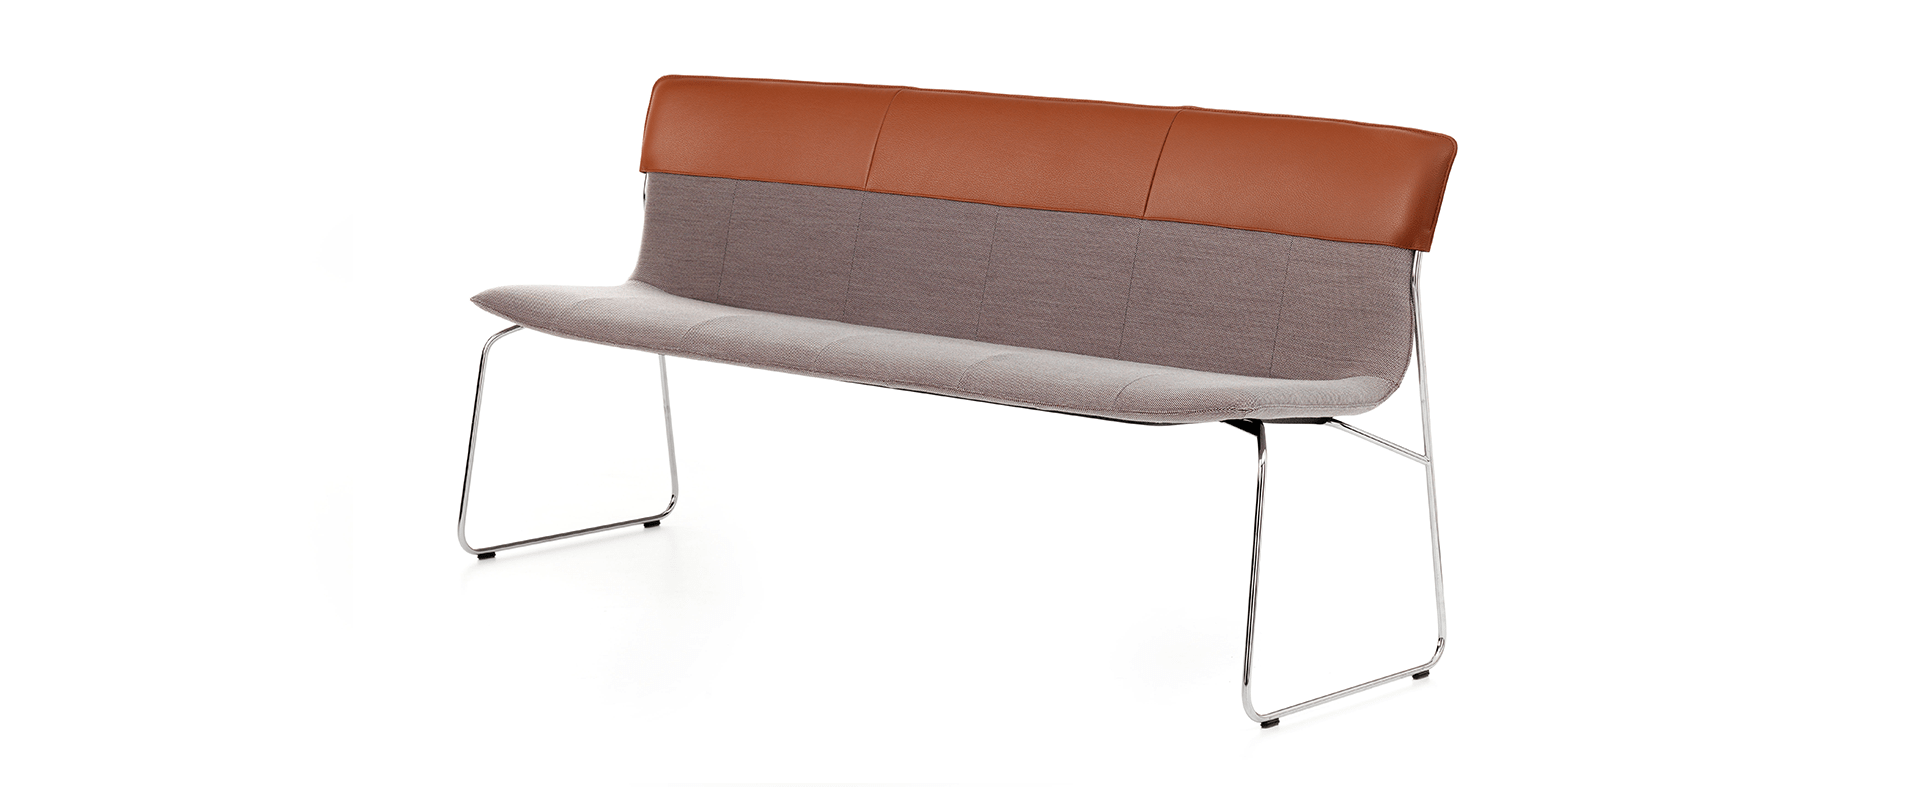 Eetkamer Eclipse Design Diningroom Bench Didore By Leolux